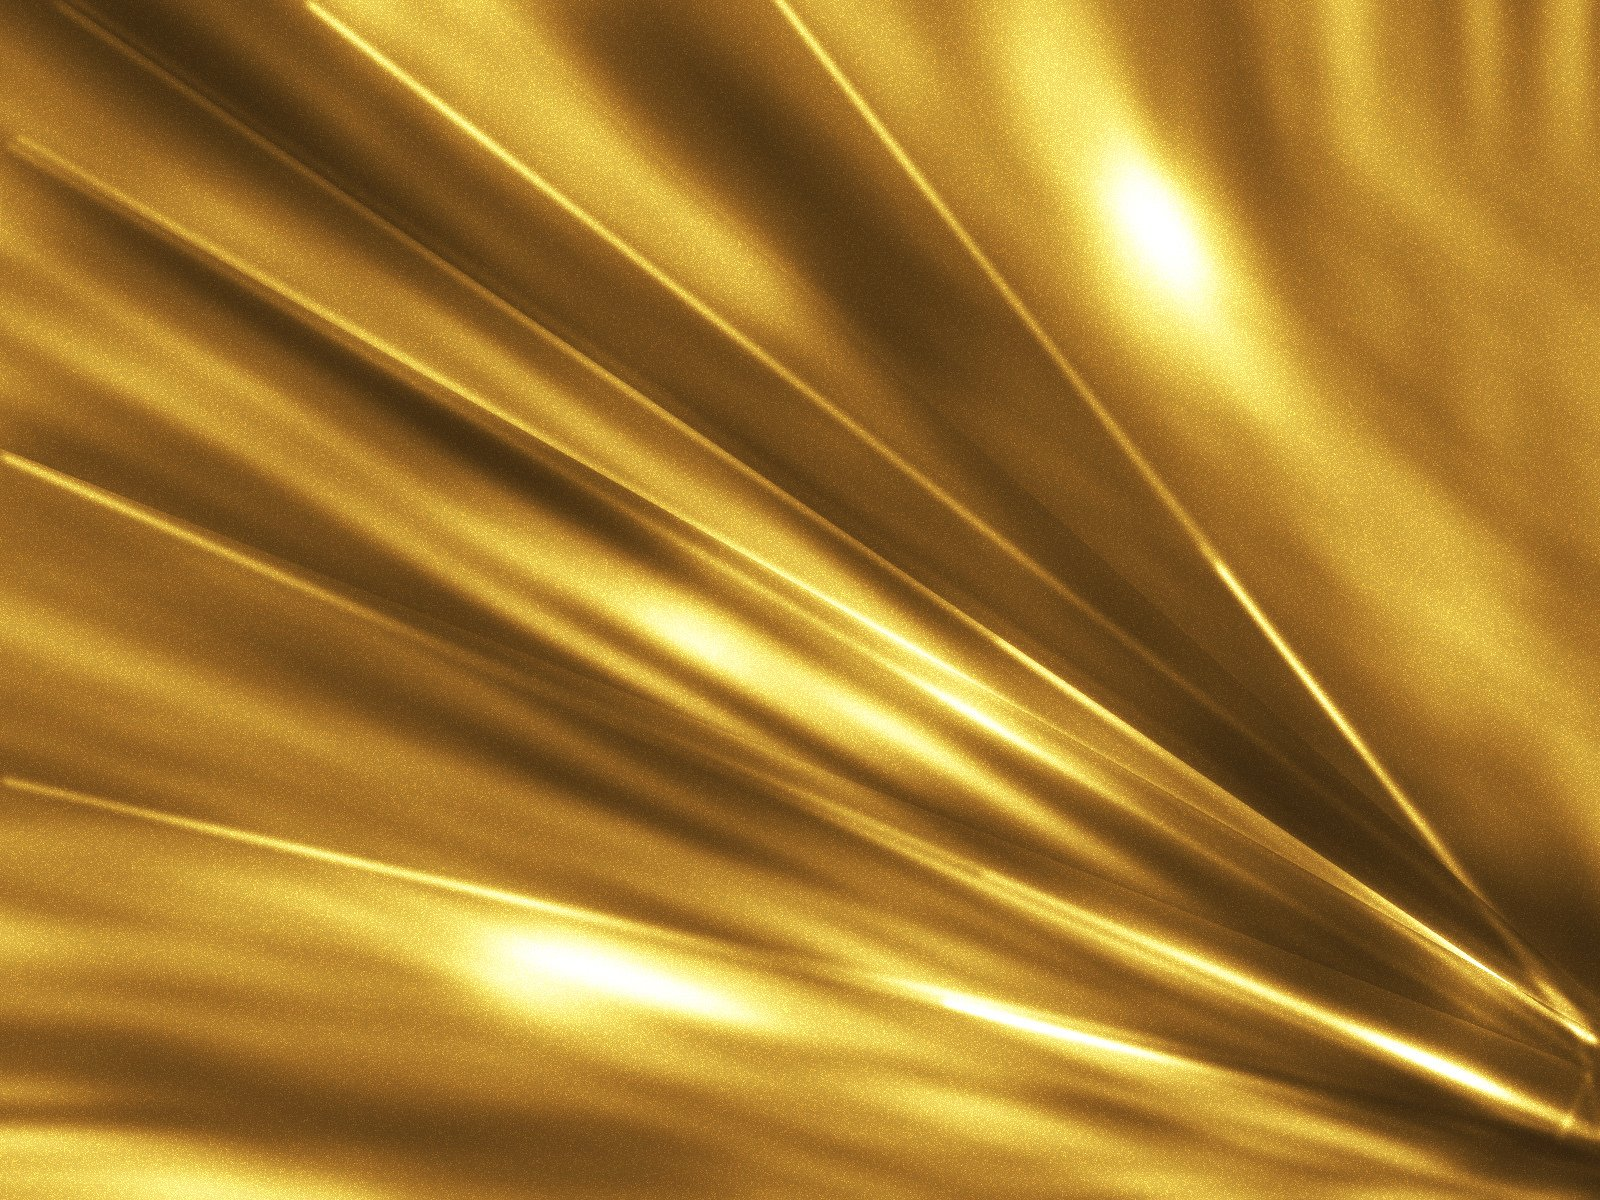 Wallpaper Gold HD